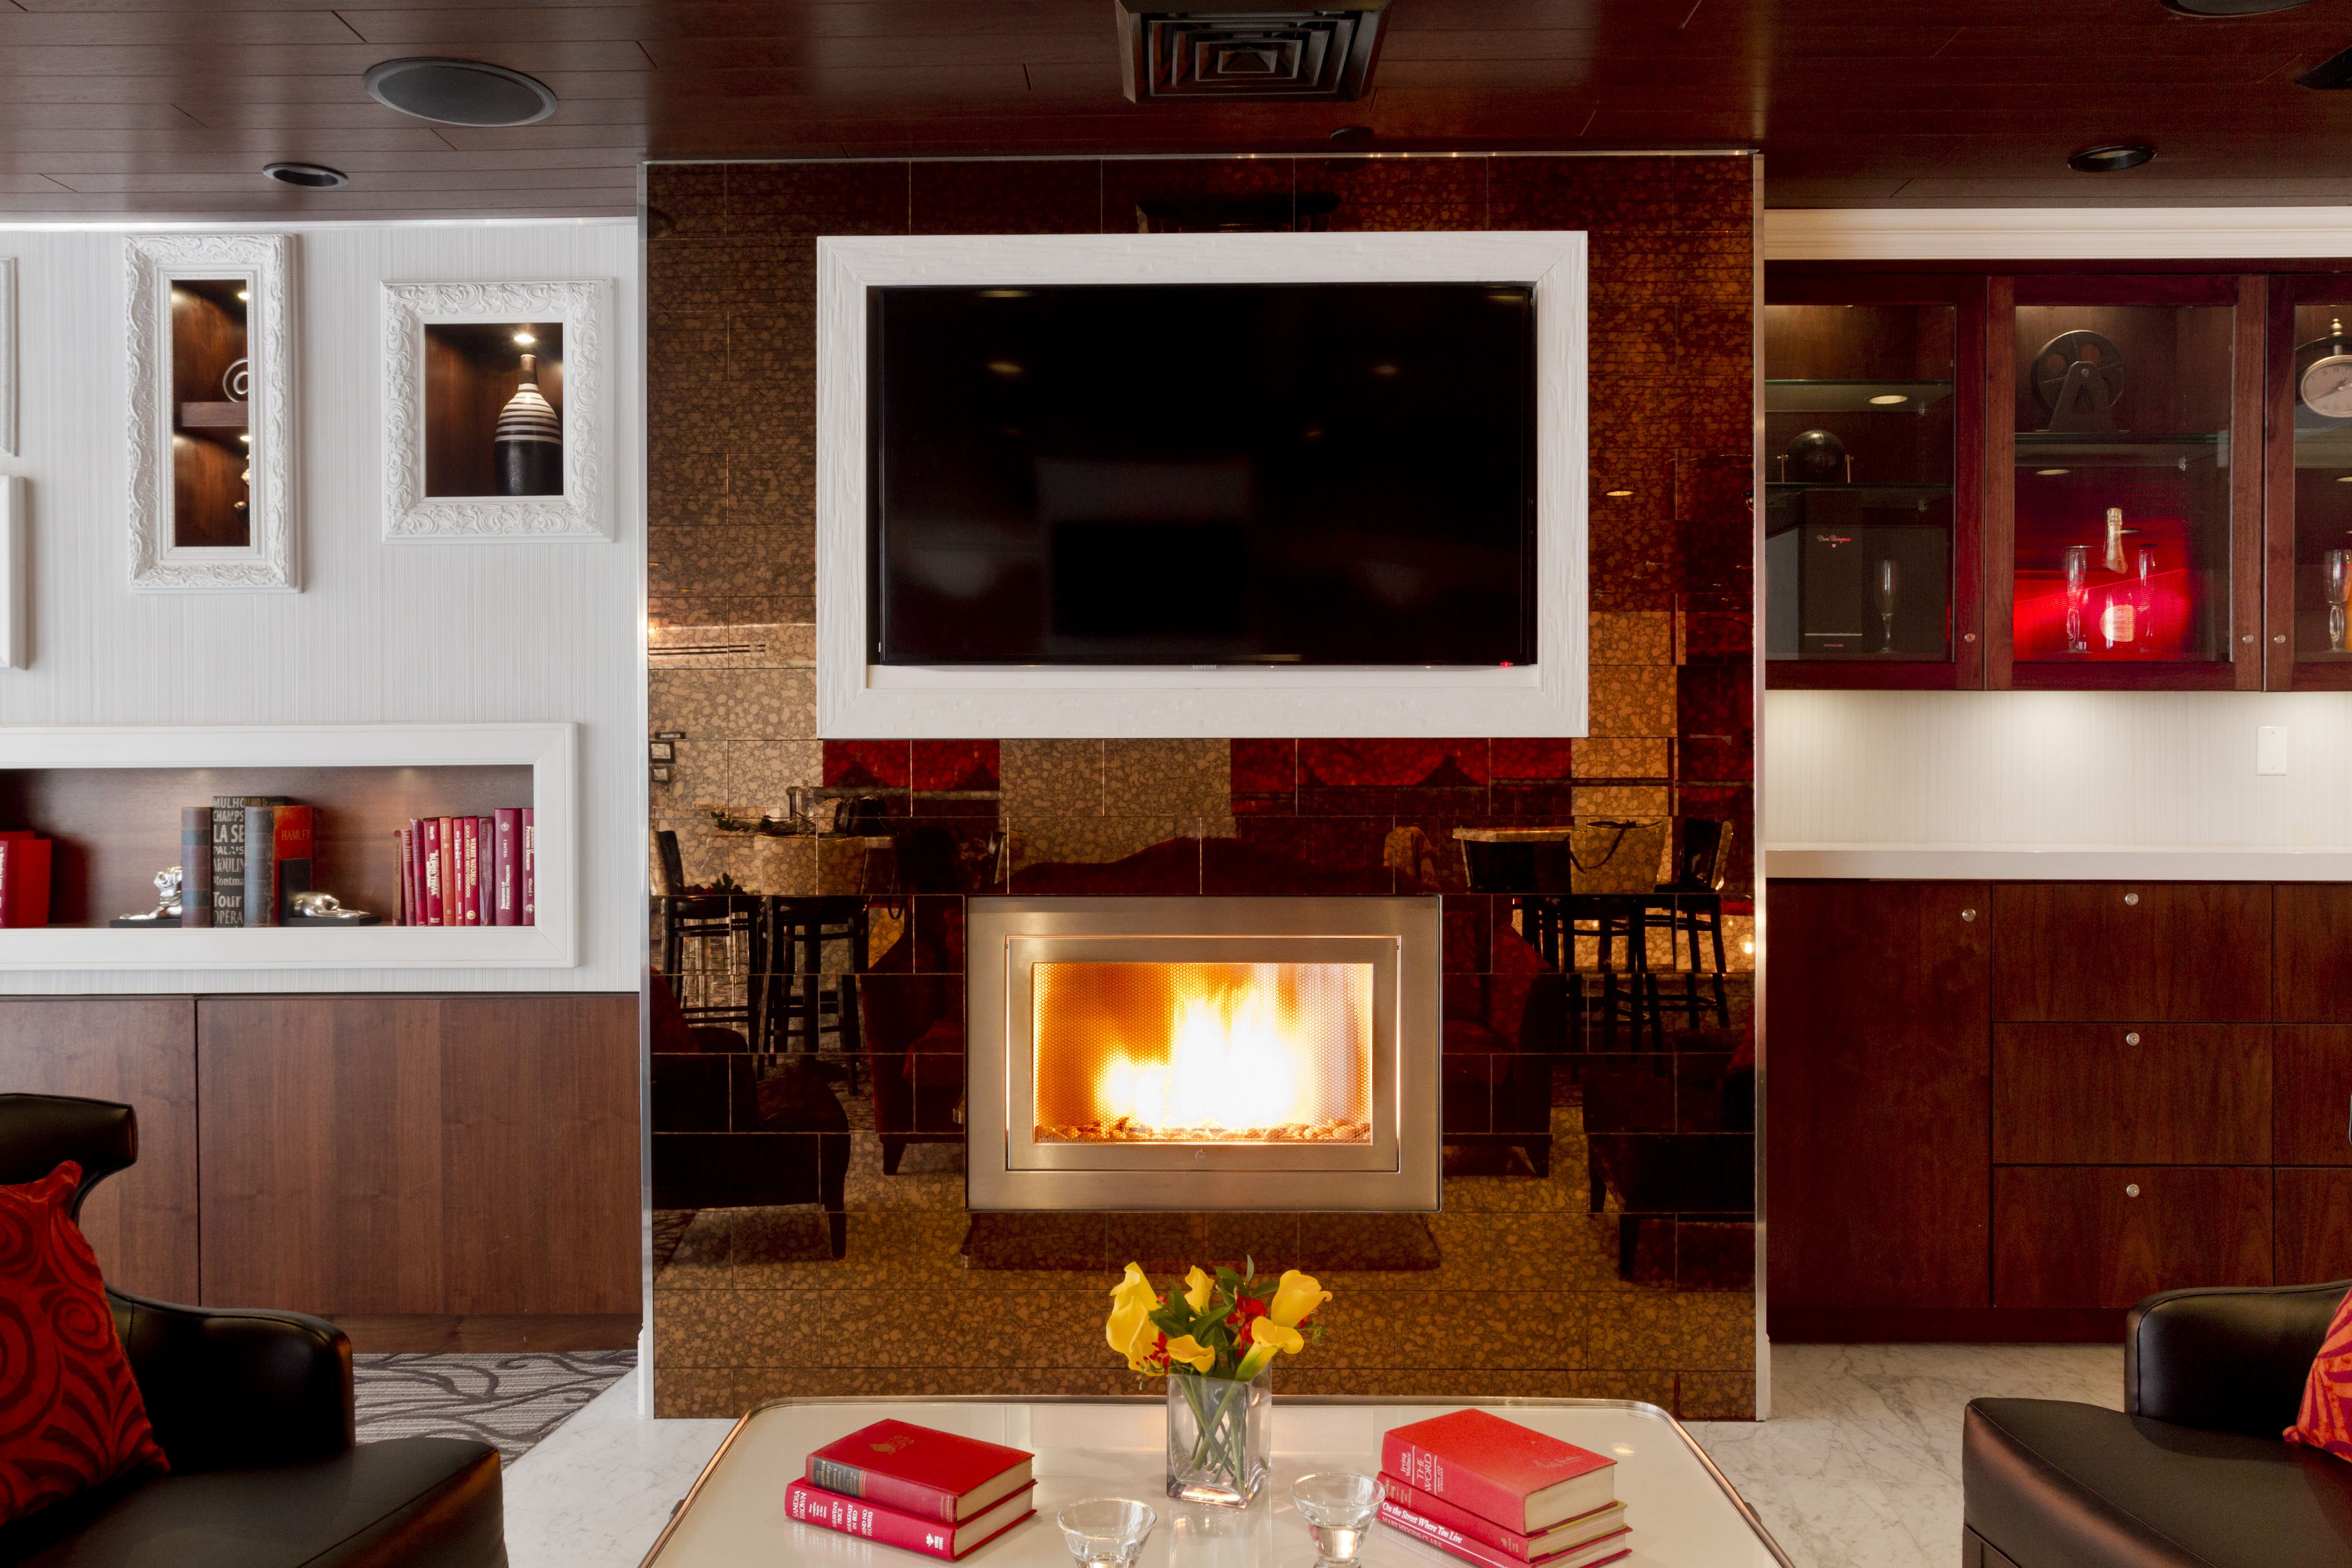 Bar Fireplace And Cozy Chairs Hotel Indigo